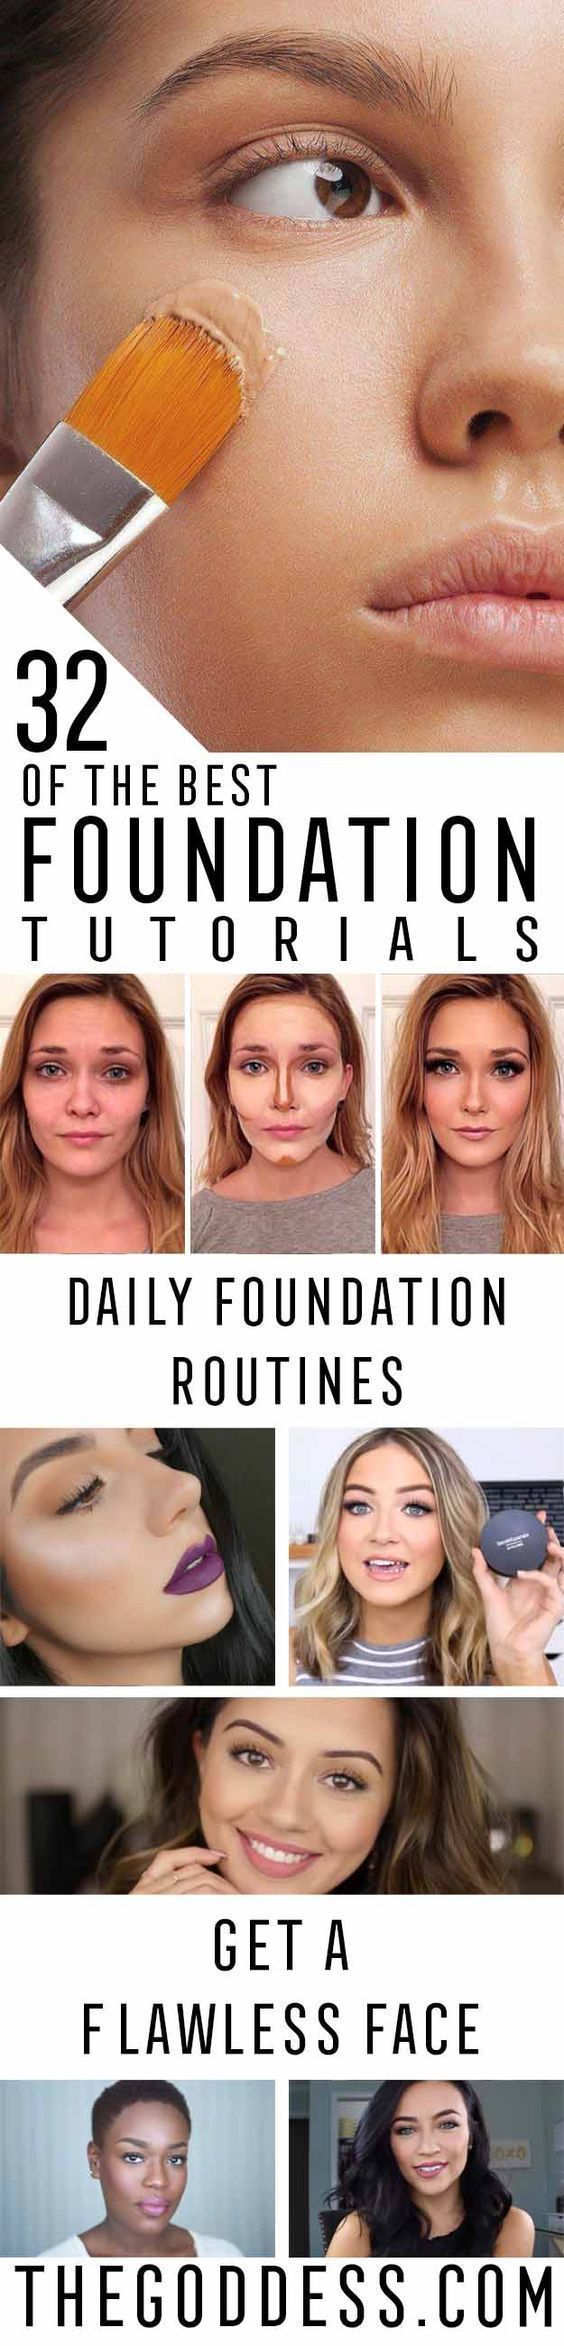 32 of the Best Foundation Tutorials Makeup tutorial